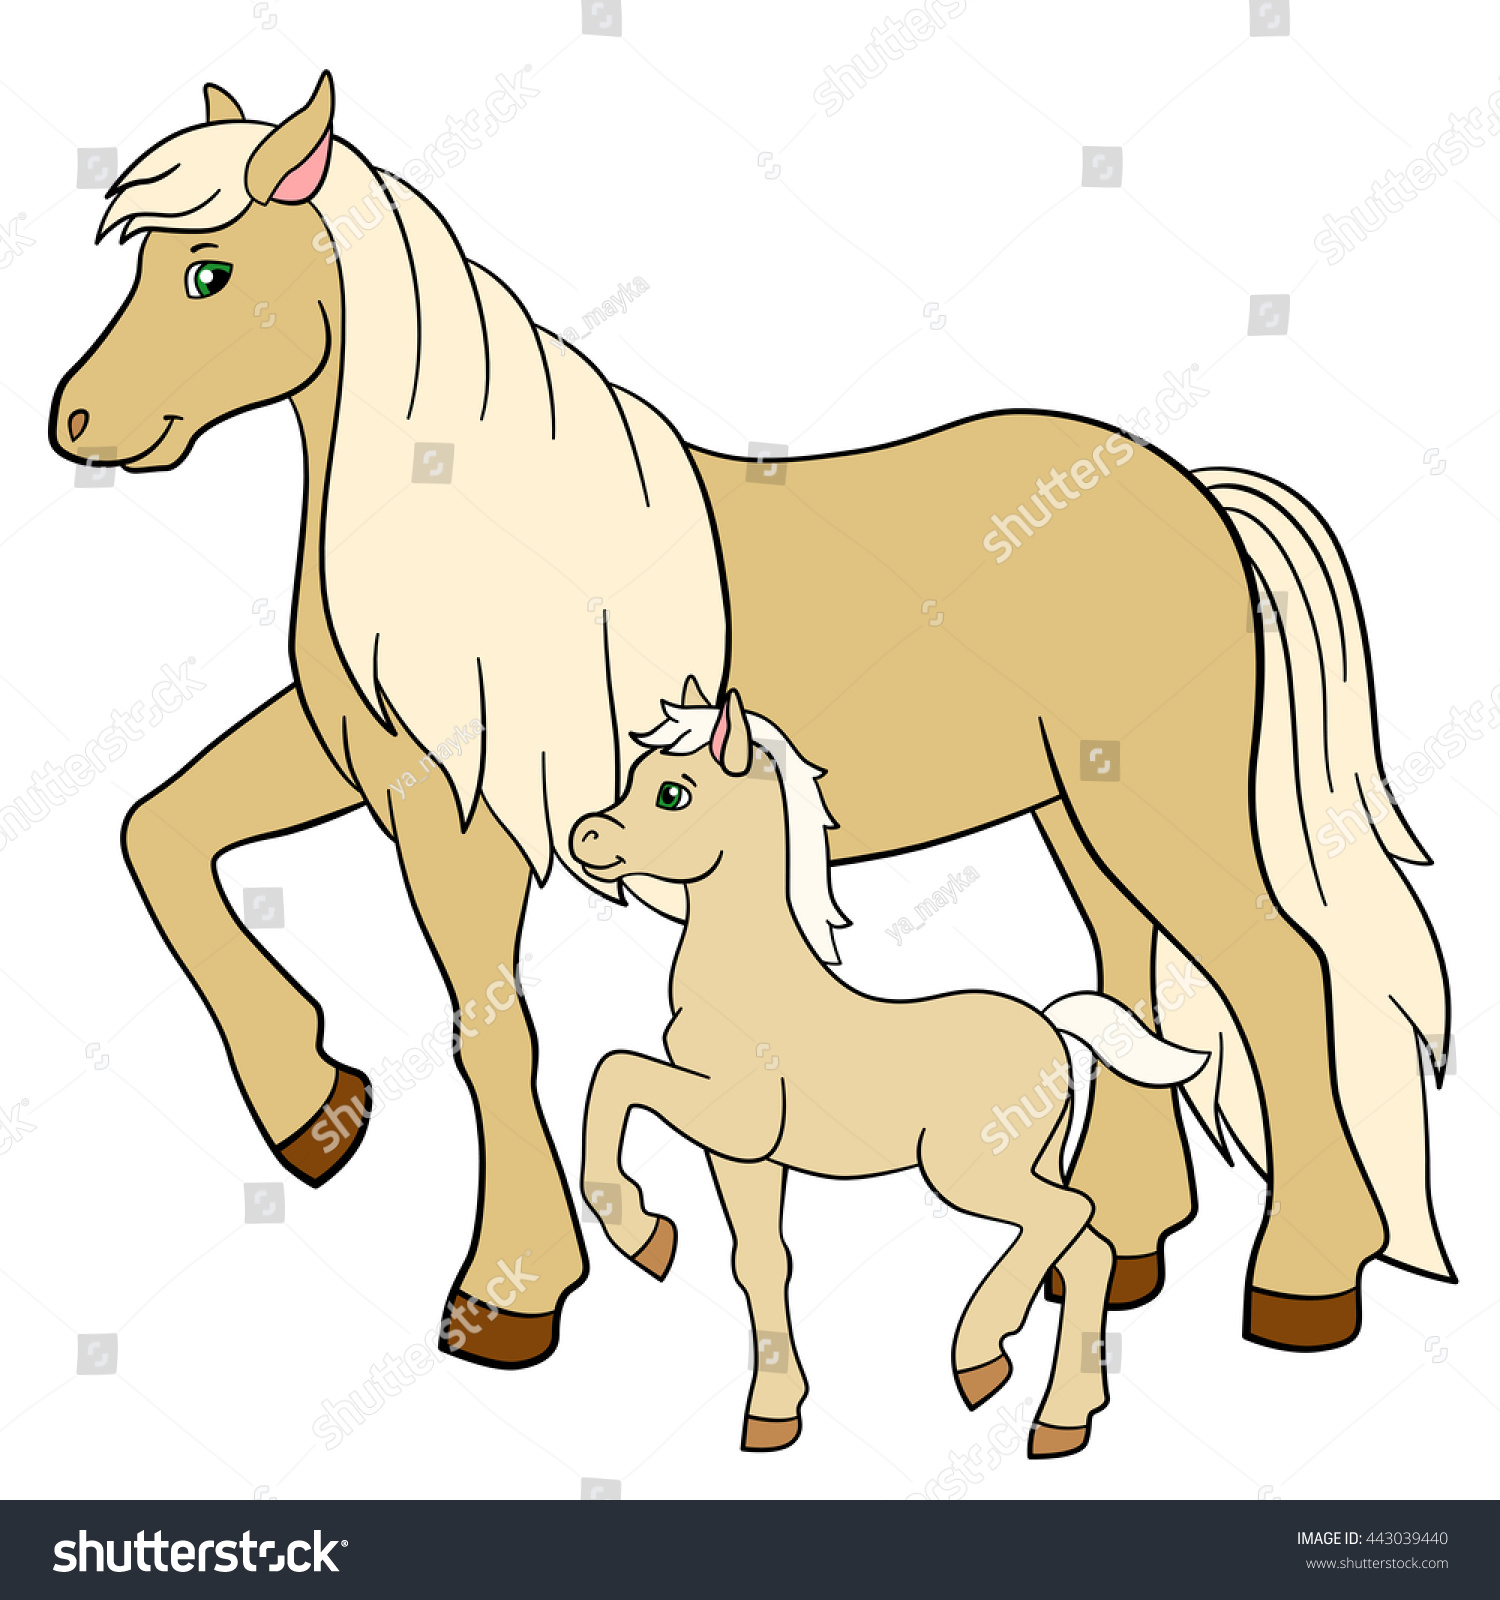 Farm animal horse coloring pages - Coloring Pages Farm Animals Mother Horse With Her Little Cute Foal